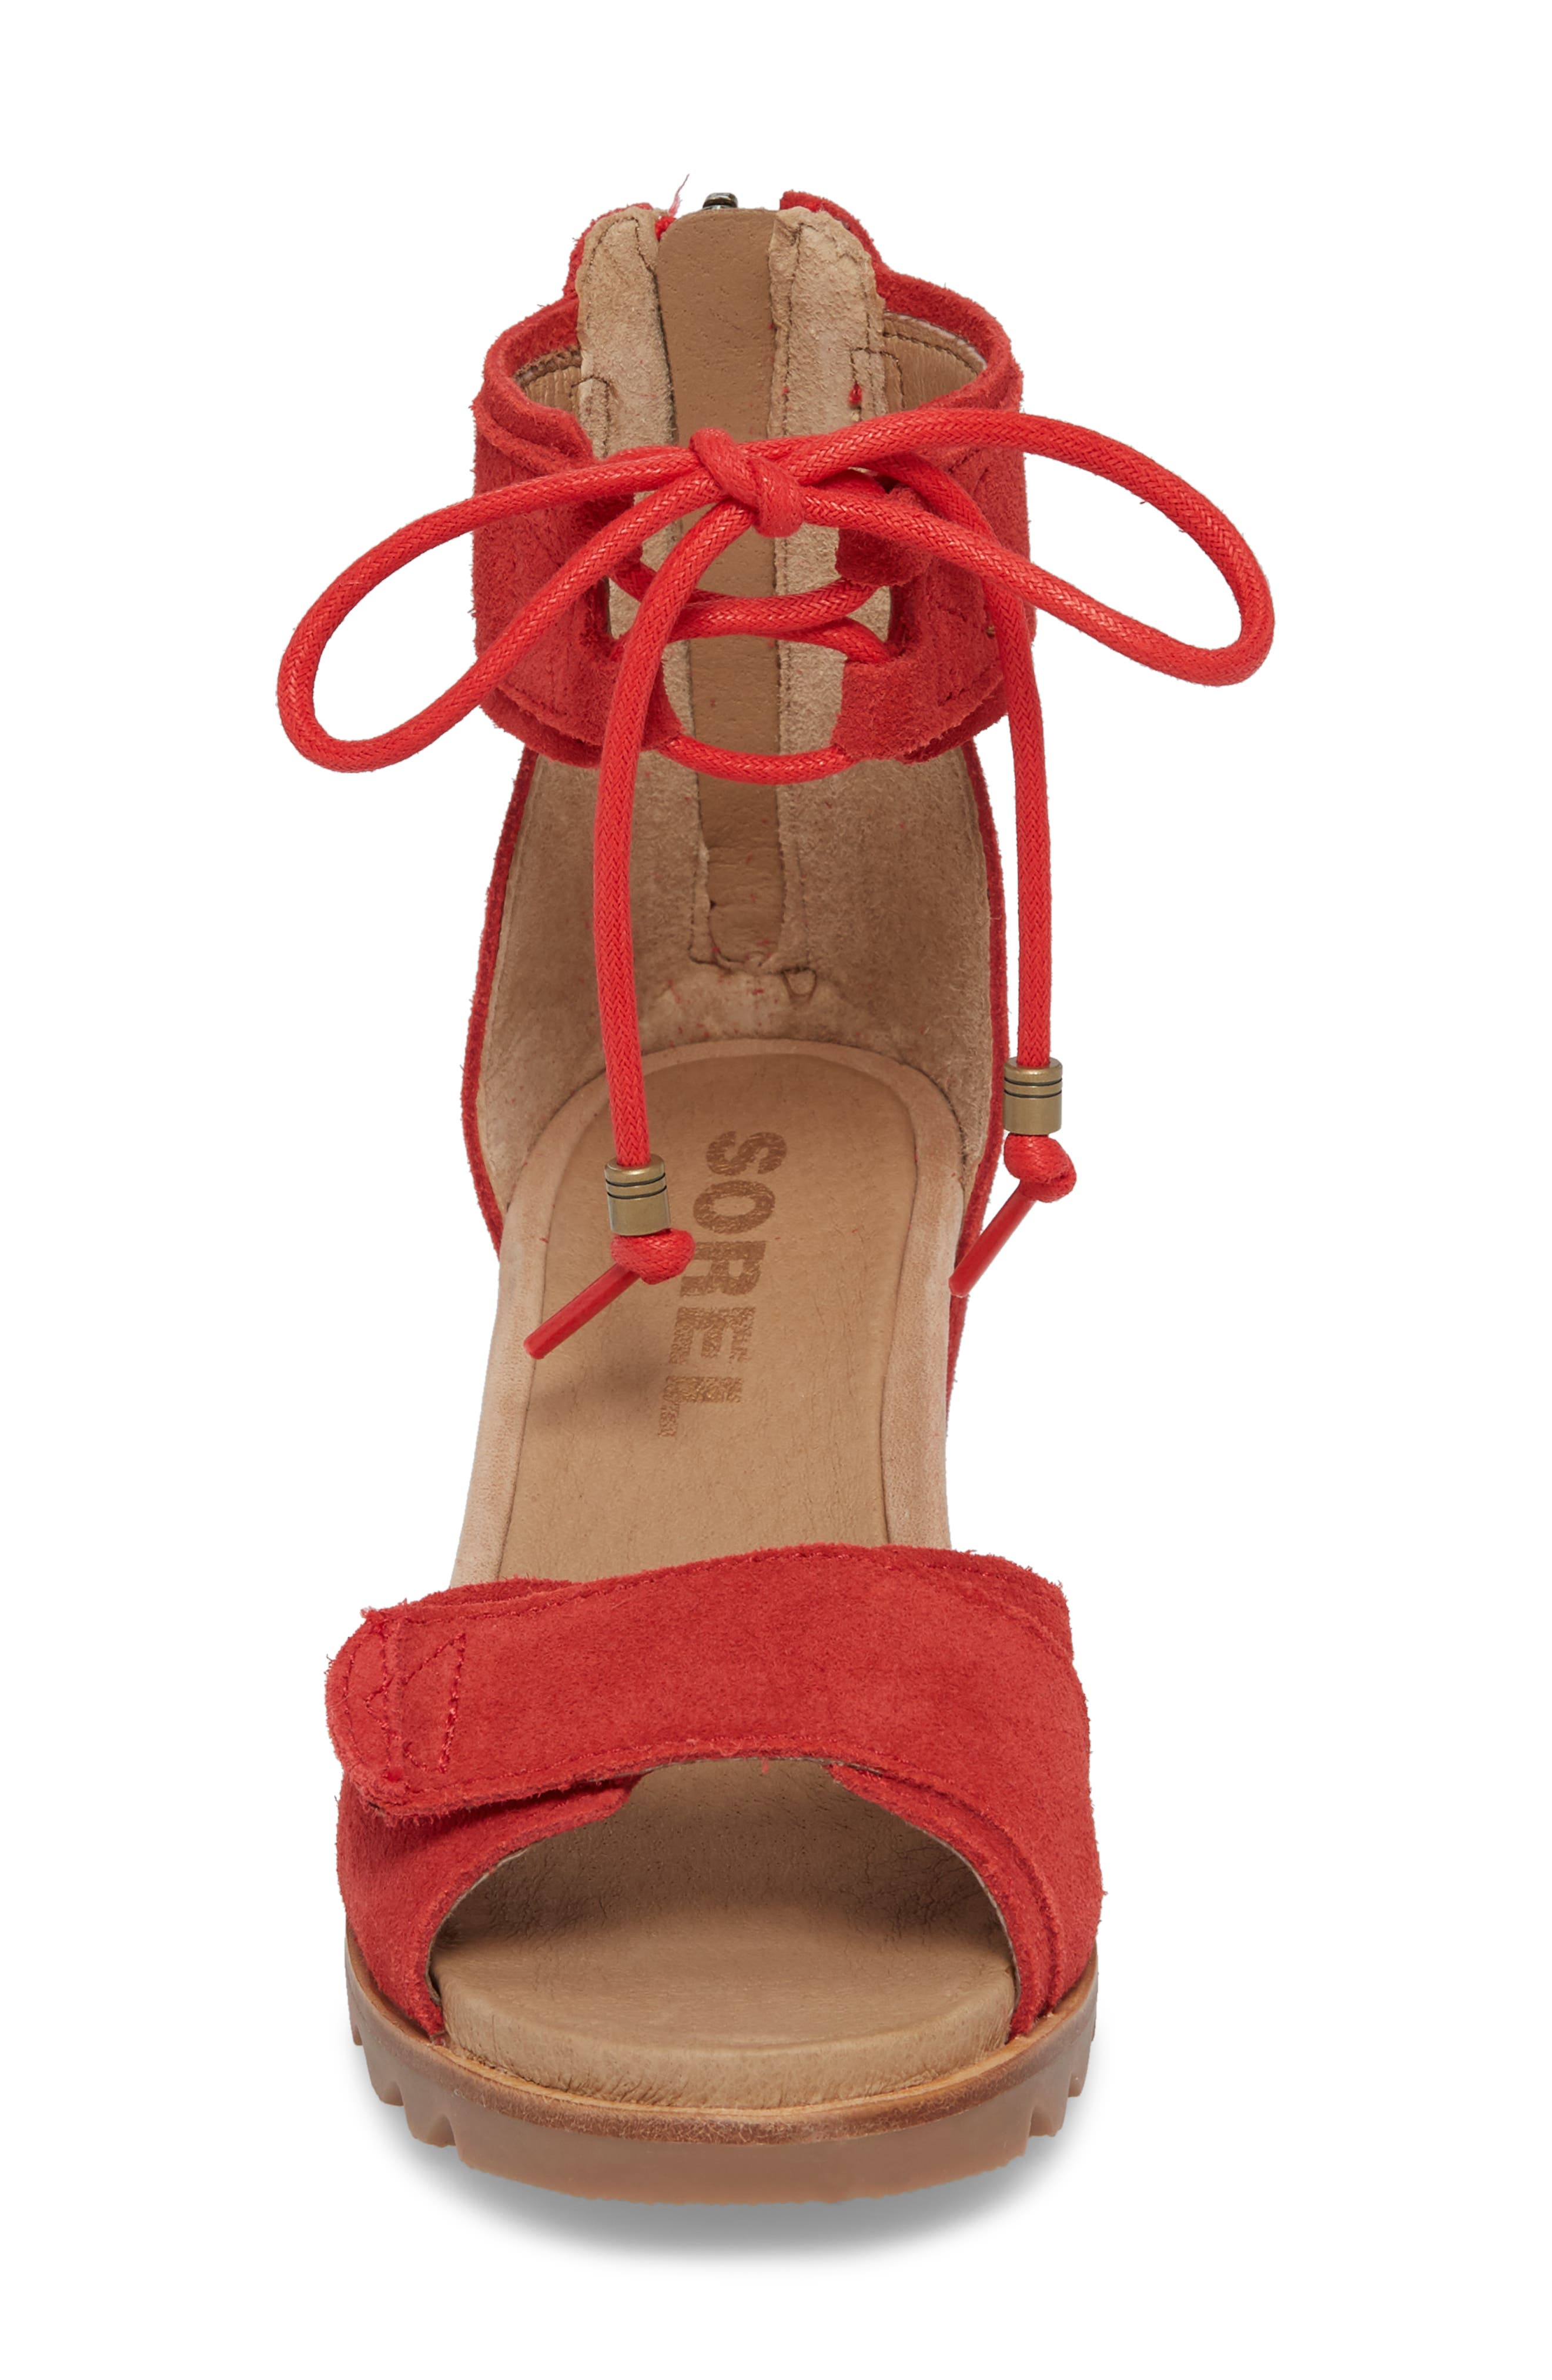 Joanie Cuff Wedge Sandal,                             Alternate thumbnail 4, color,                             Bright Red